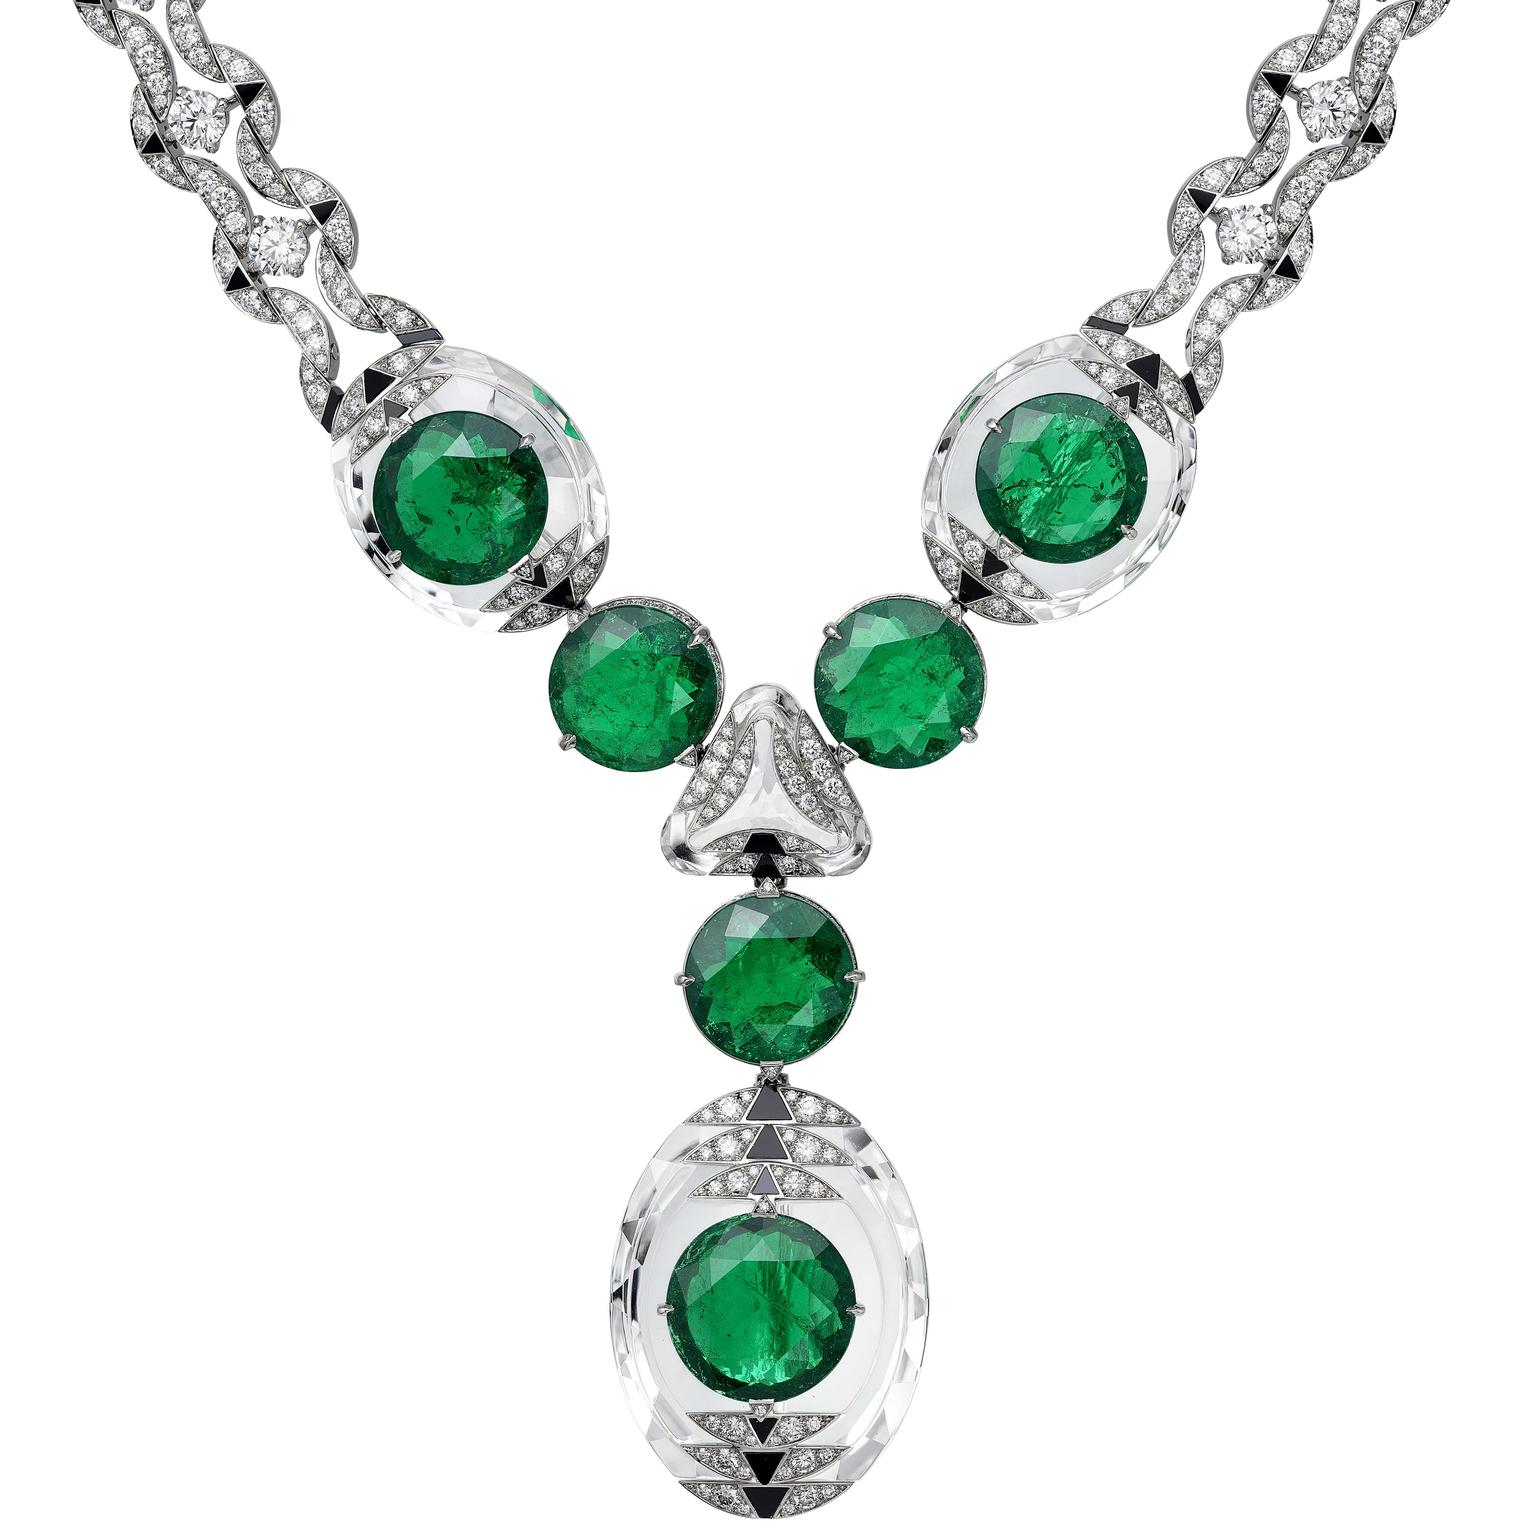 Cartier Magnitude Theia emerald necklace